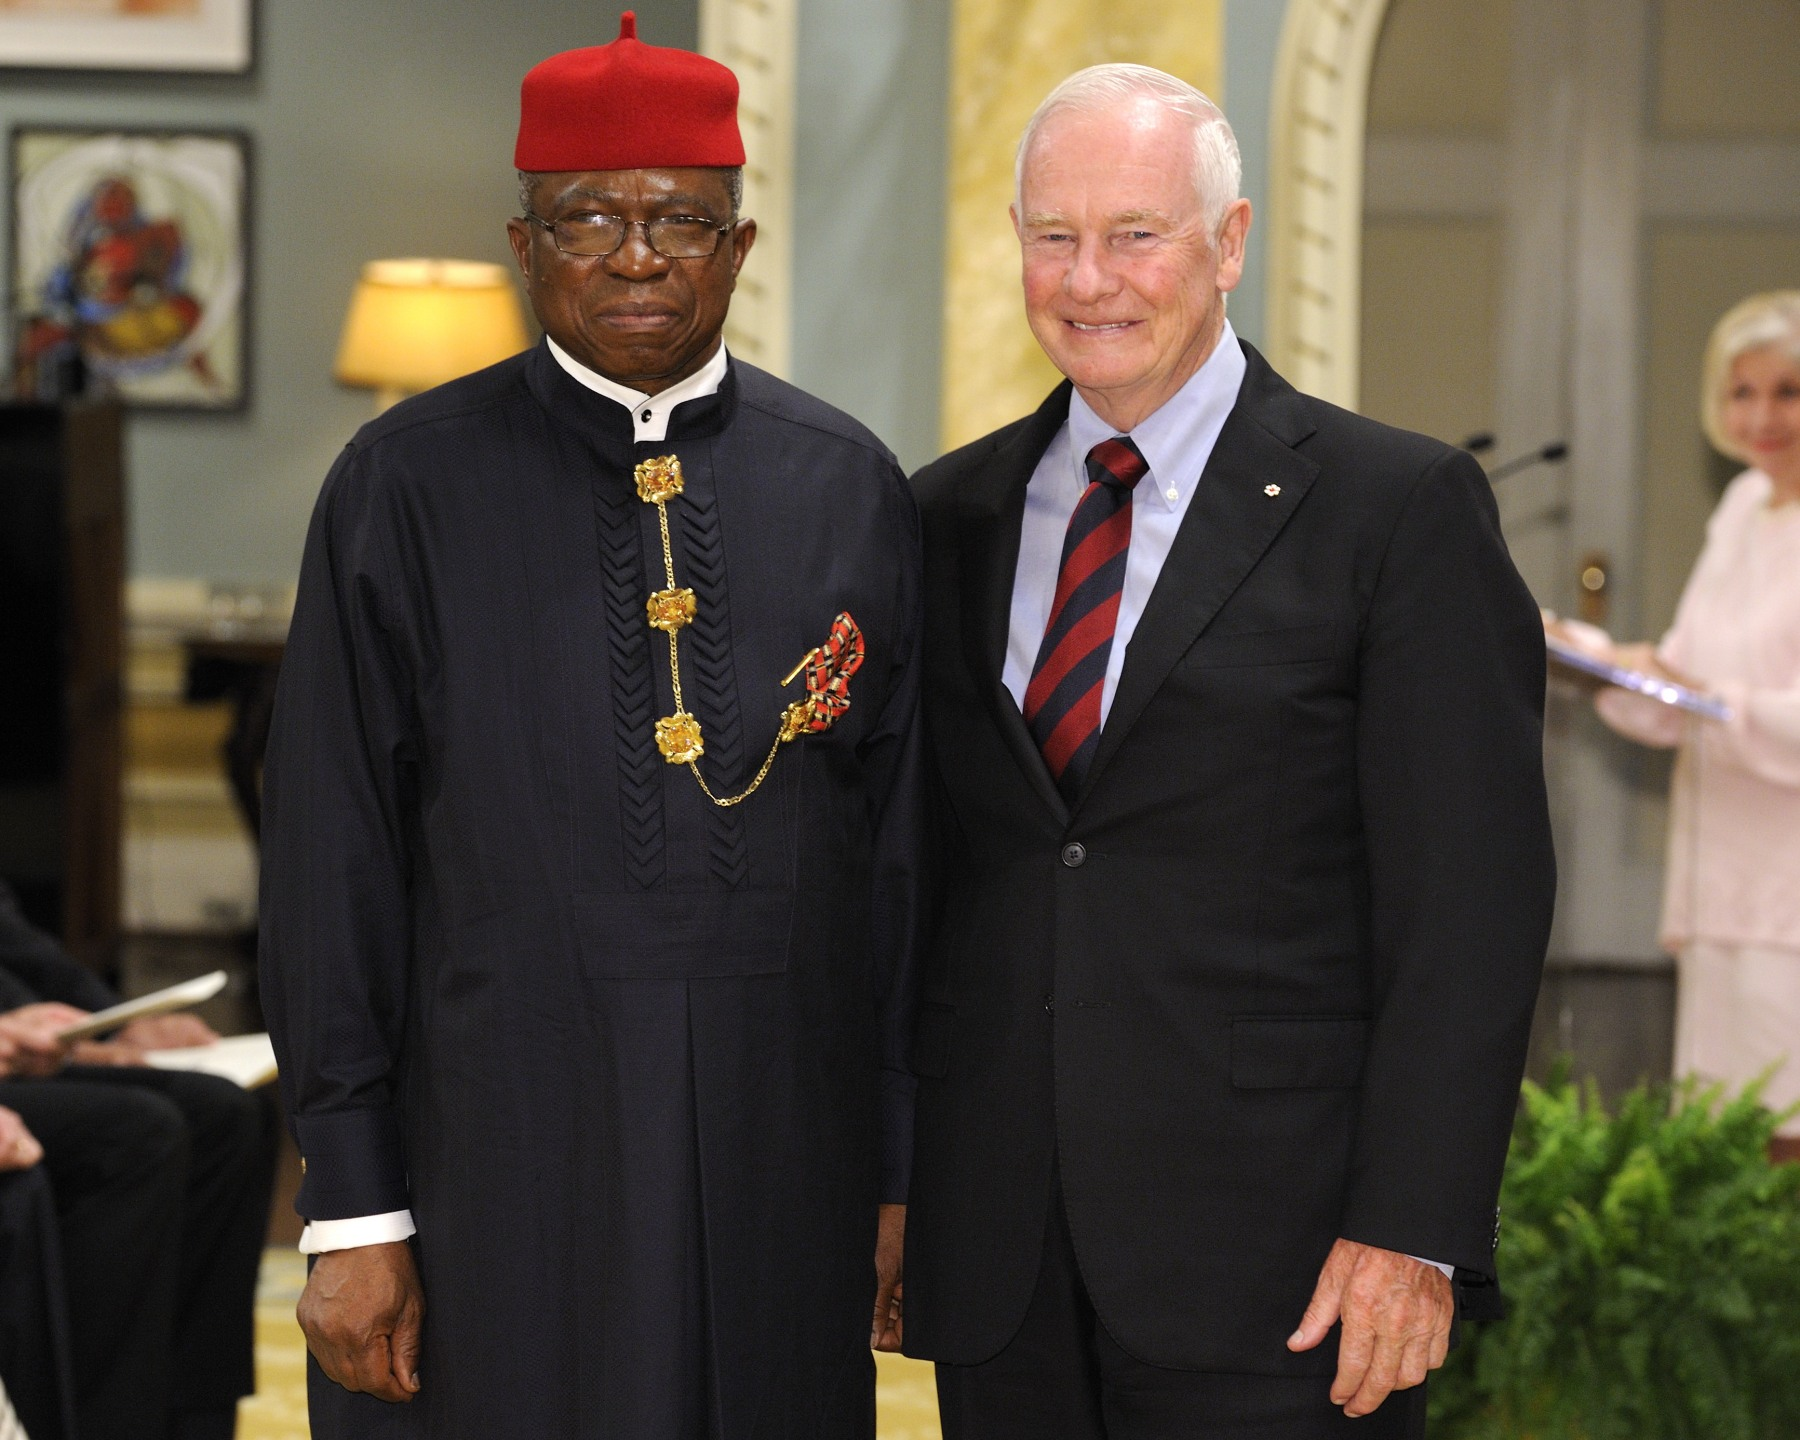 The Governor General received the credentials of His Excellency Ojo Uma Maduekwe, High Commissioner of the Federal Republic of Nigeria.